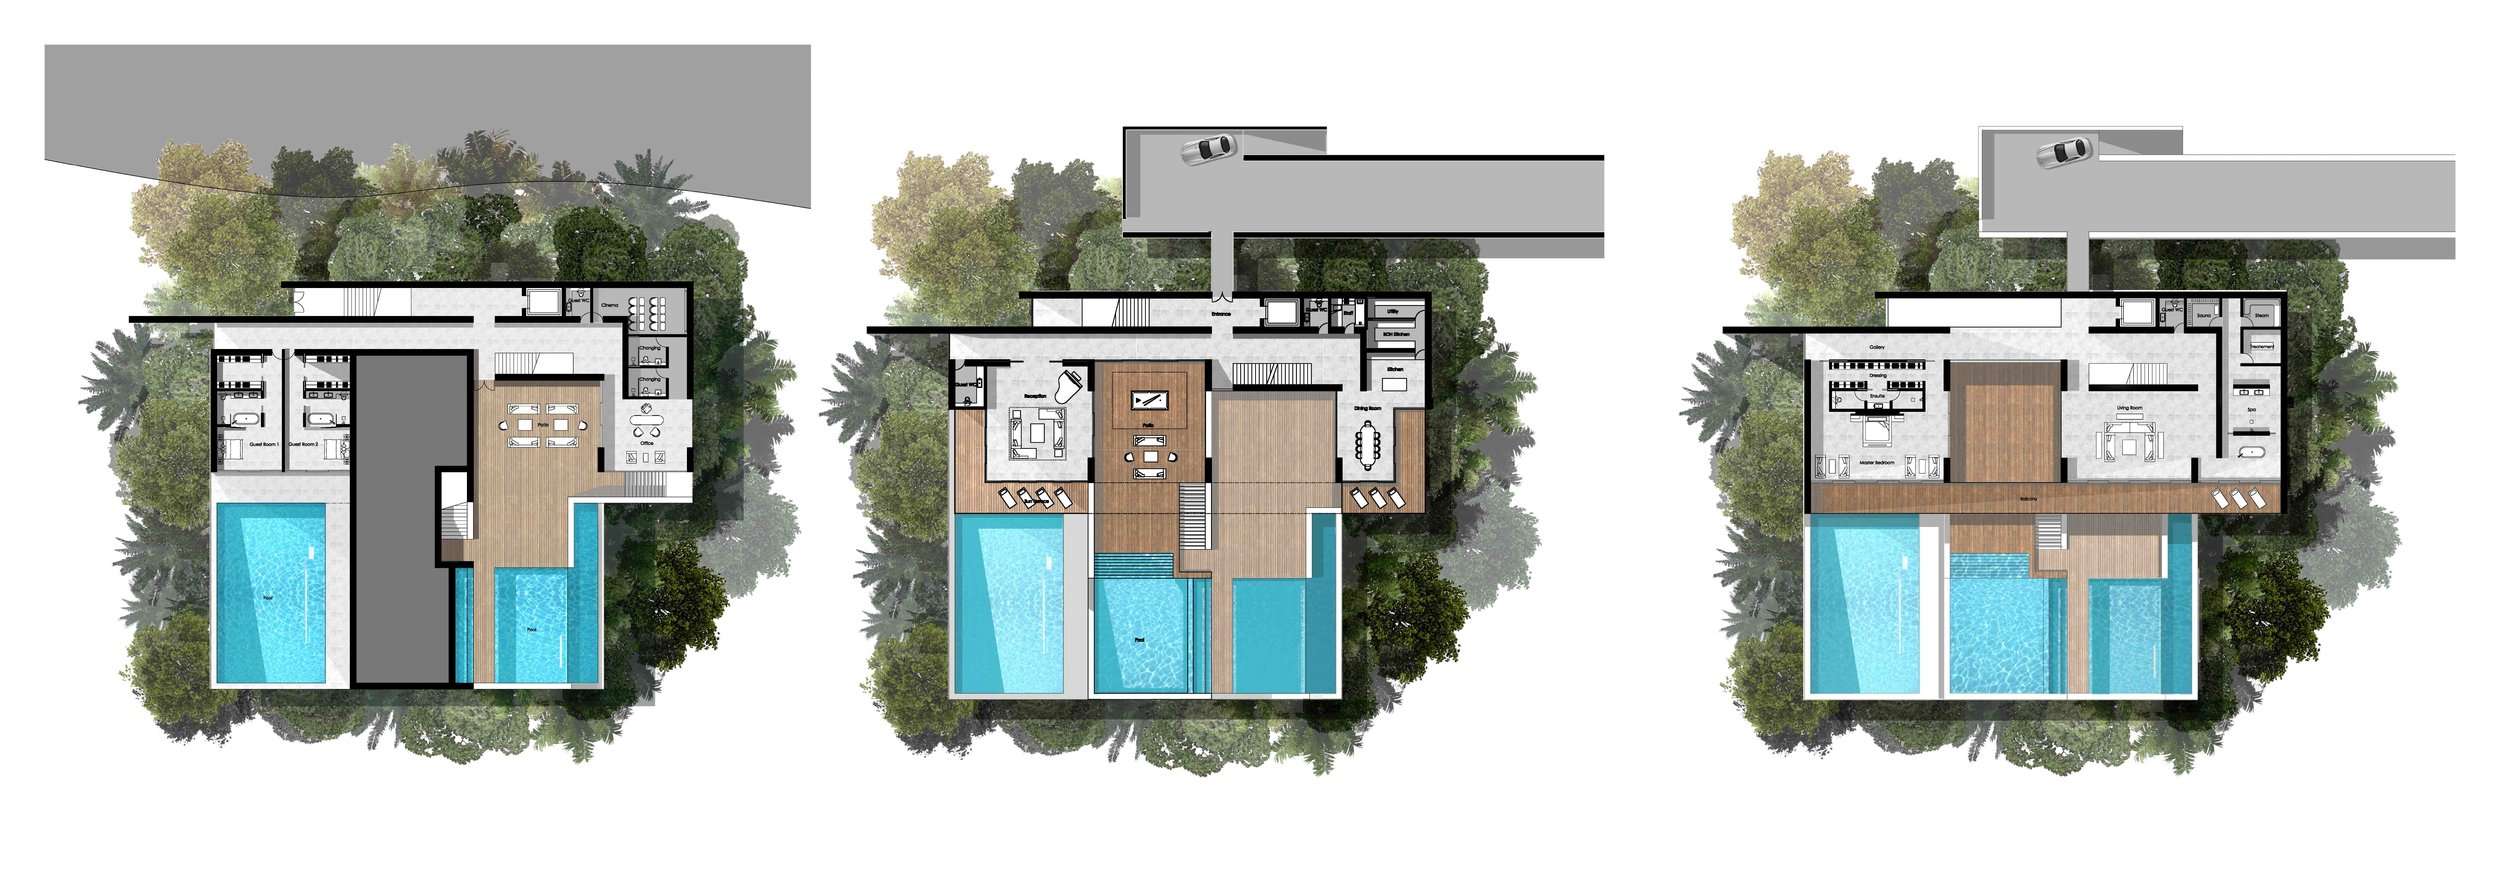 Floor plans for the first villa concept - includes a trio of swimming pools, gym, spa, dining room, kitchen, staff quarters and enormous bedrooms with en-suites and storage and wardrobe space